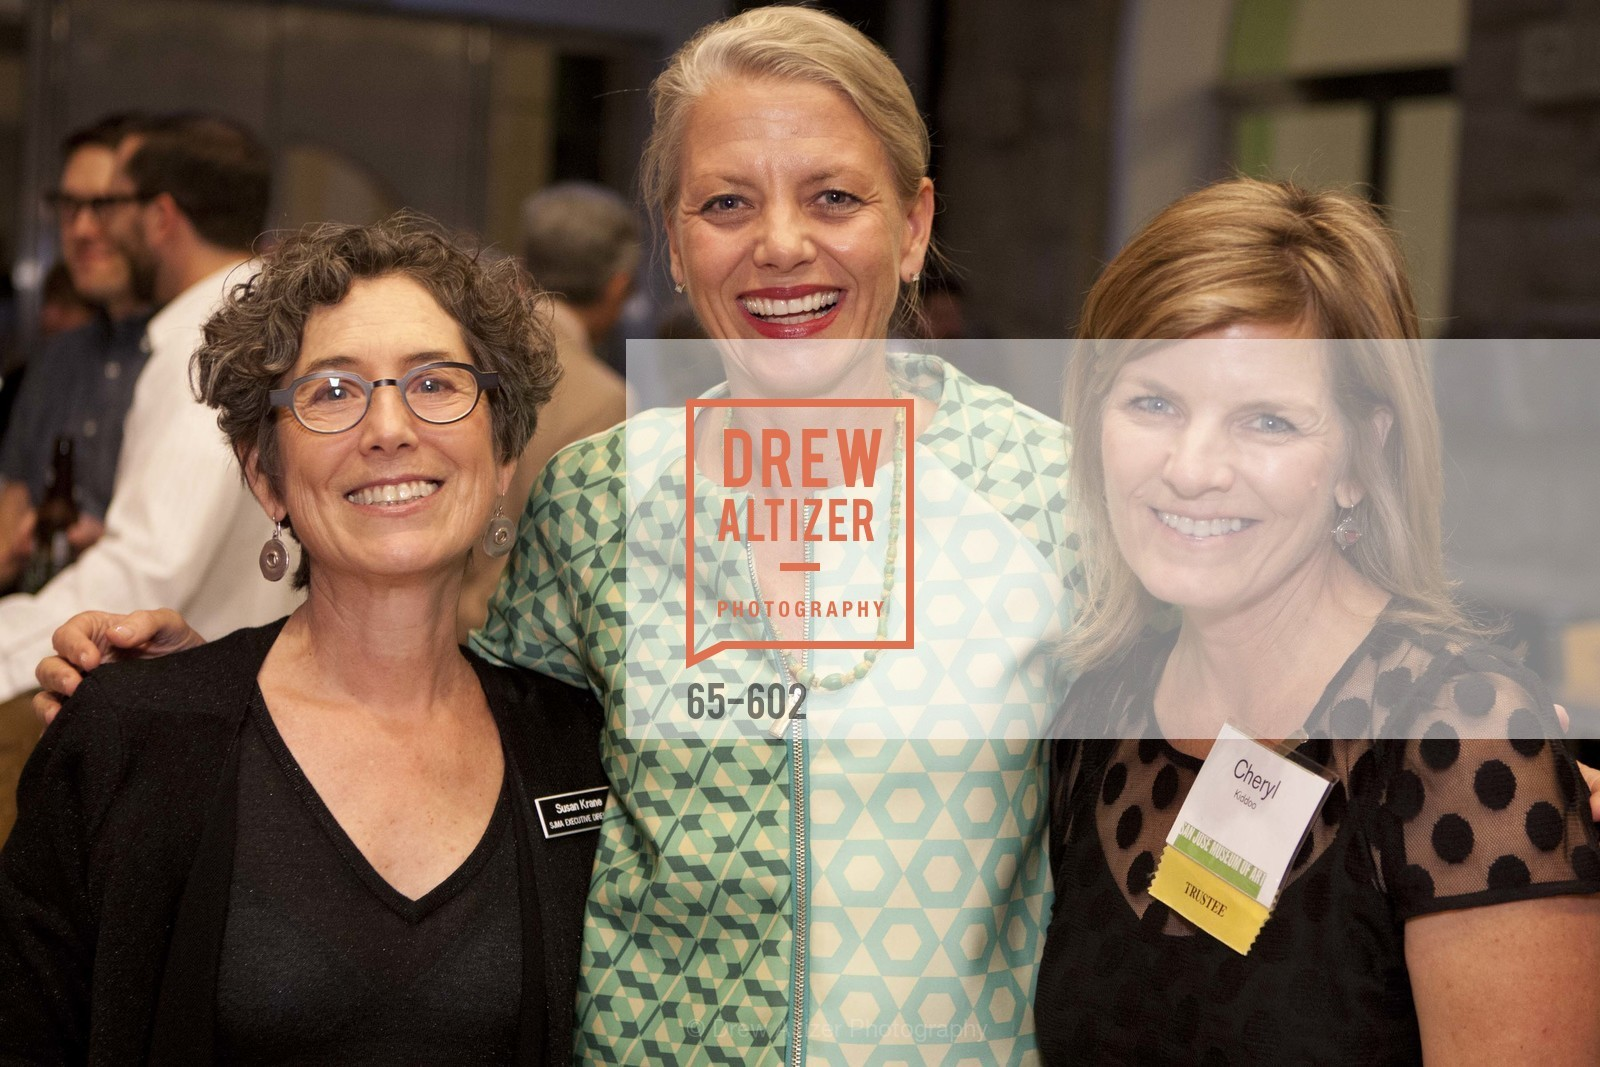 Susan Krane, Catherine Clark, Cheryl Kiddoo, SAN JOSE MUSEUM OF ART Fall Reception Opening, US, October 8th, 2014,Drew Altizer, Drew Altizer Photography, full-service agency, private events, San Francisco photographer, photographer california